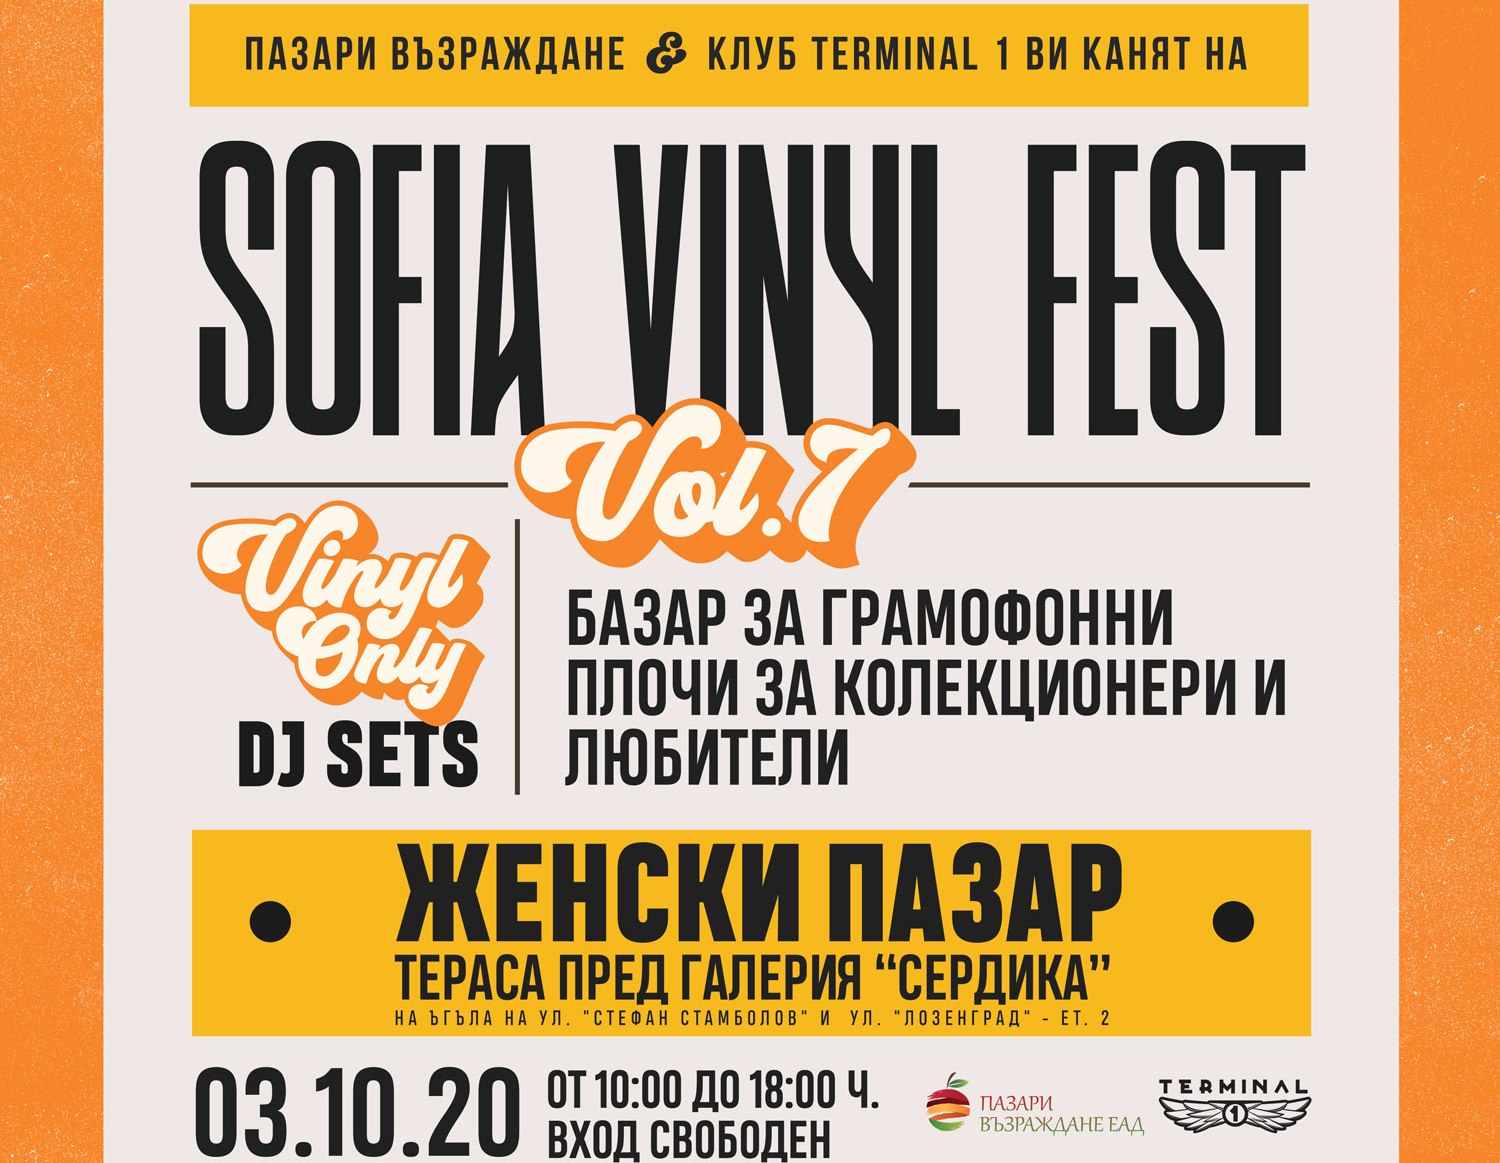 The seventh edition of SOFIA VINYL FEST will once again gather record sellers from all over the country